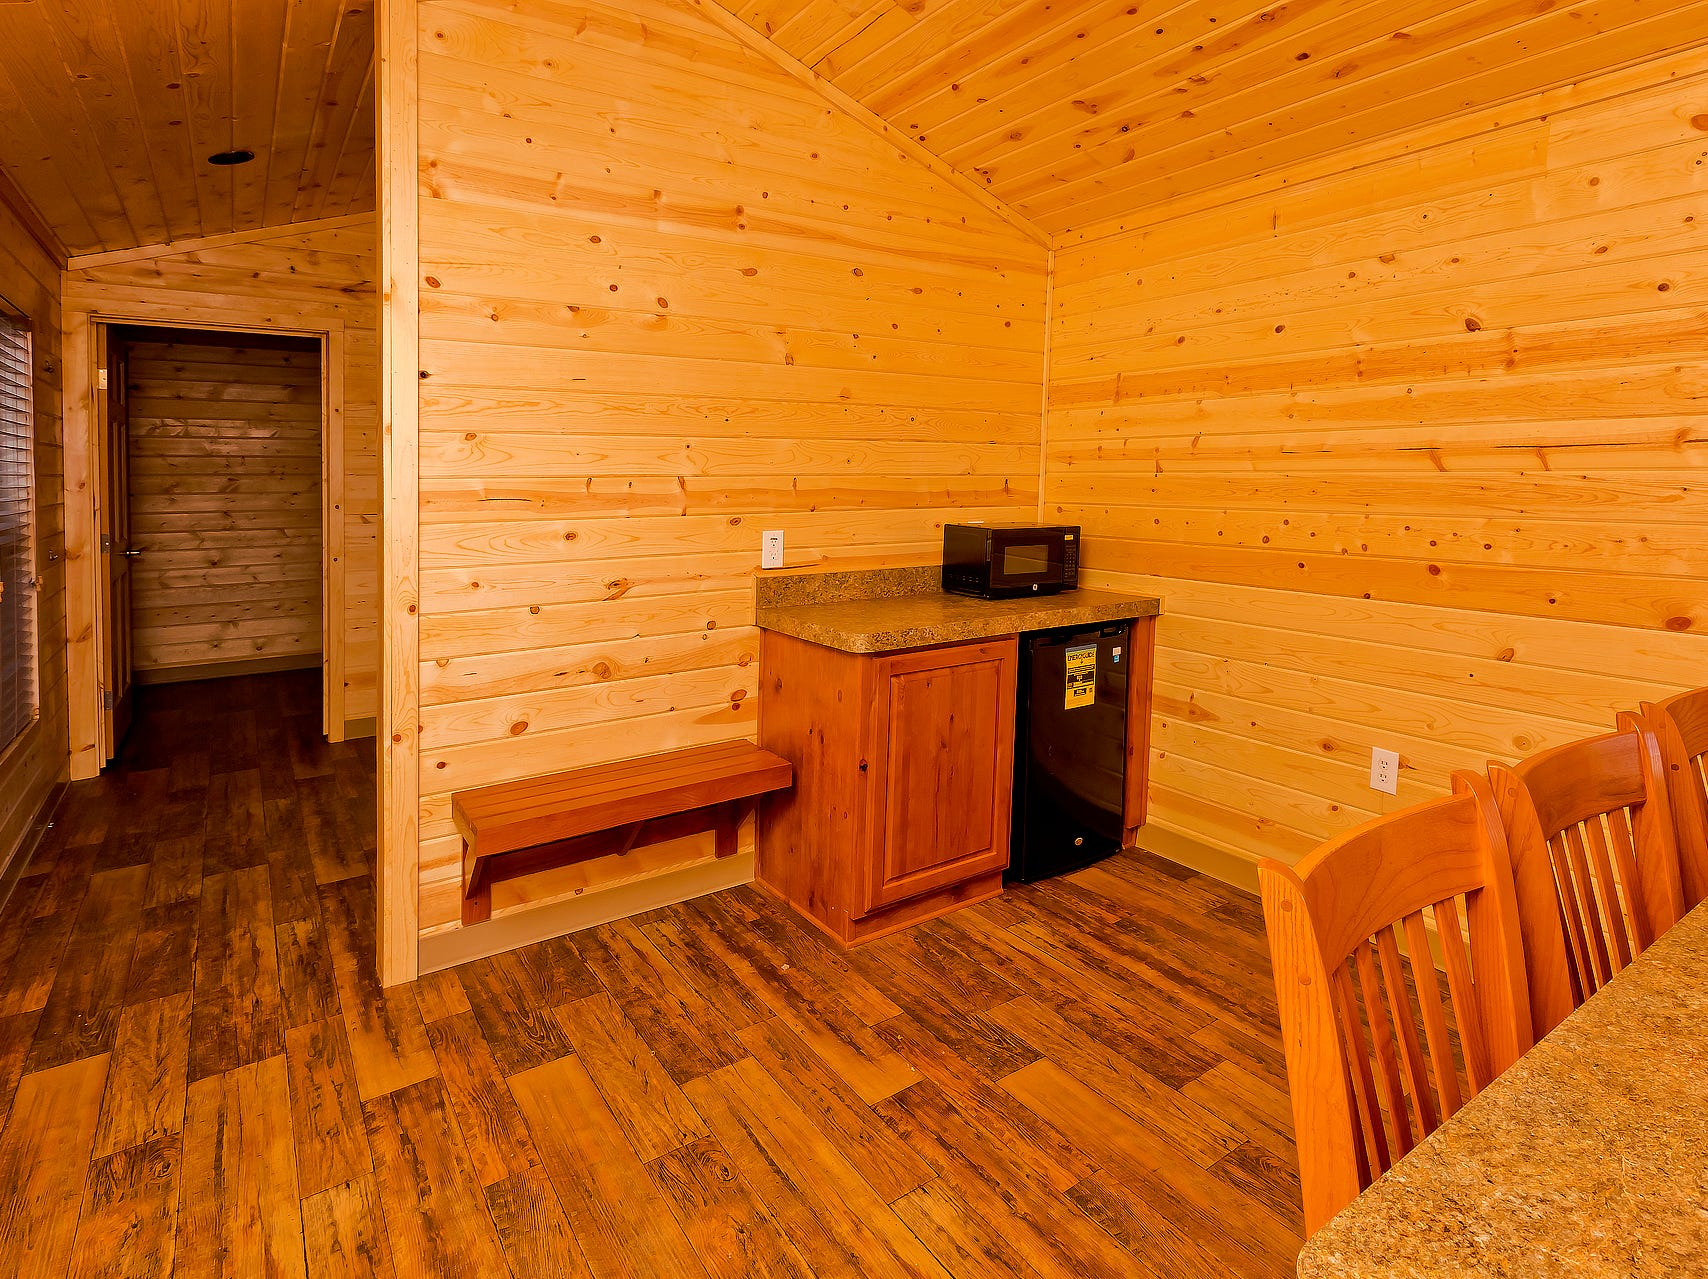 Cabins at Patagonia Lake come with refrigerator and microwave.